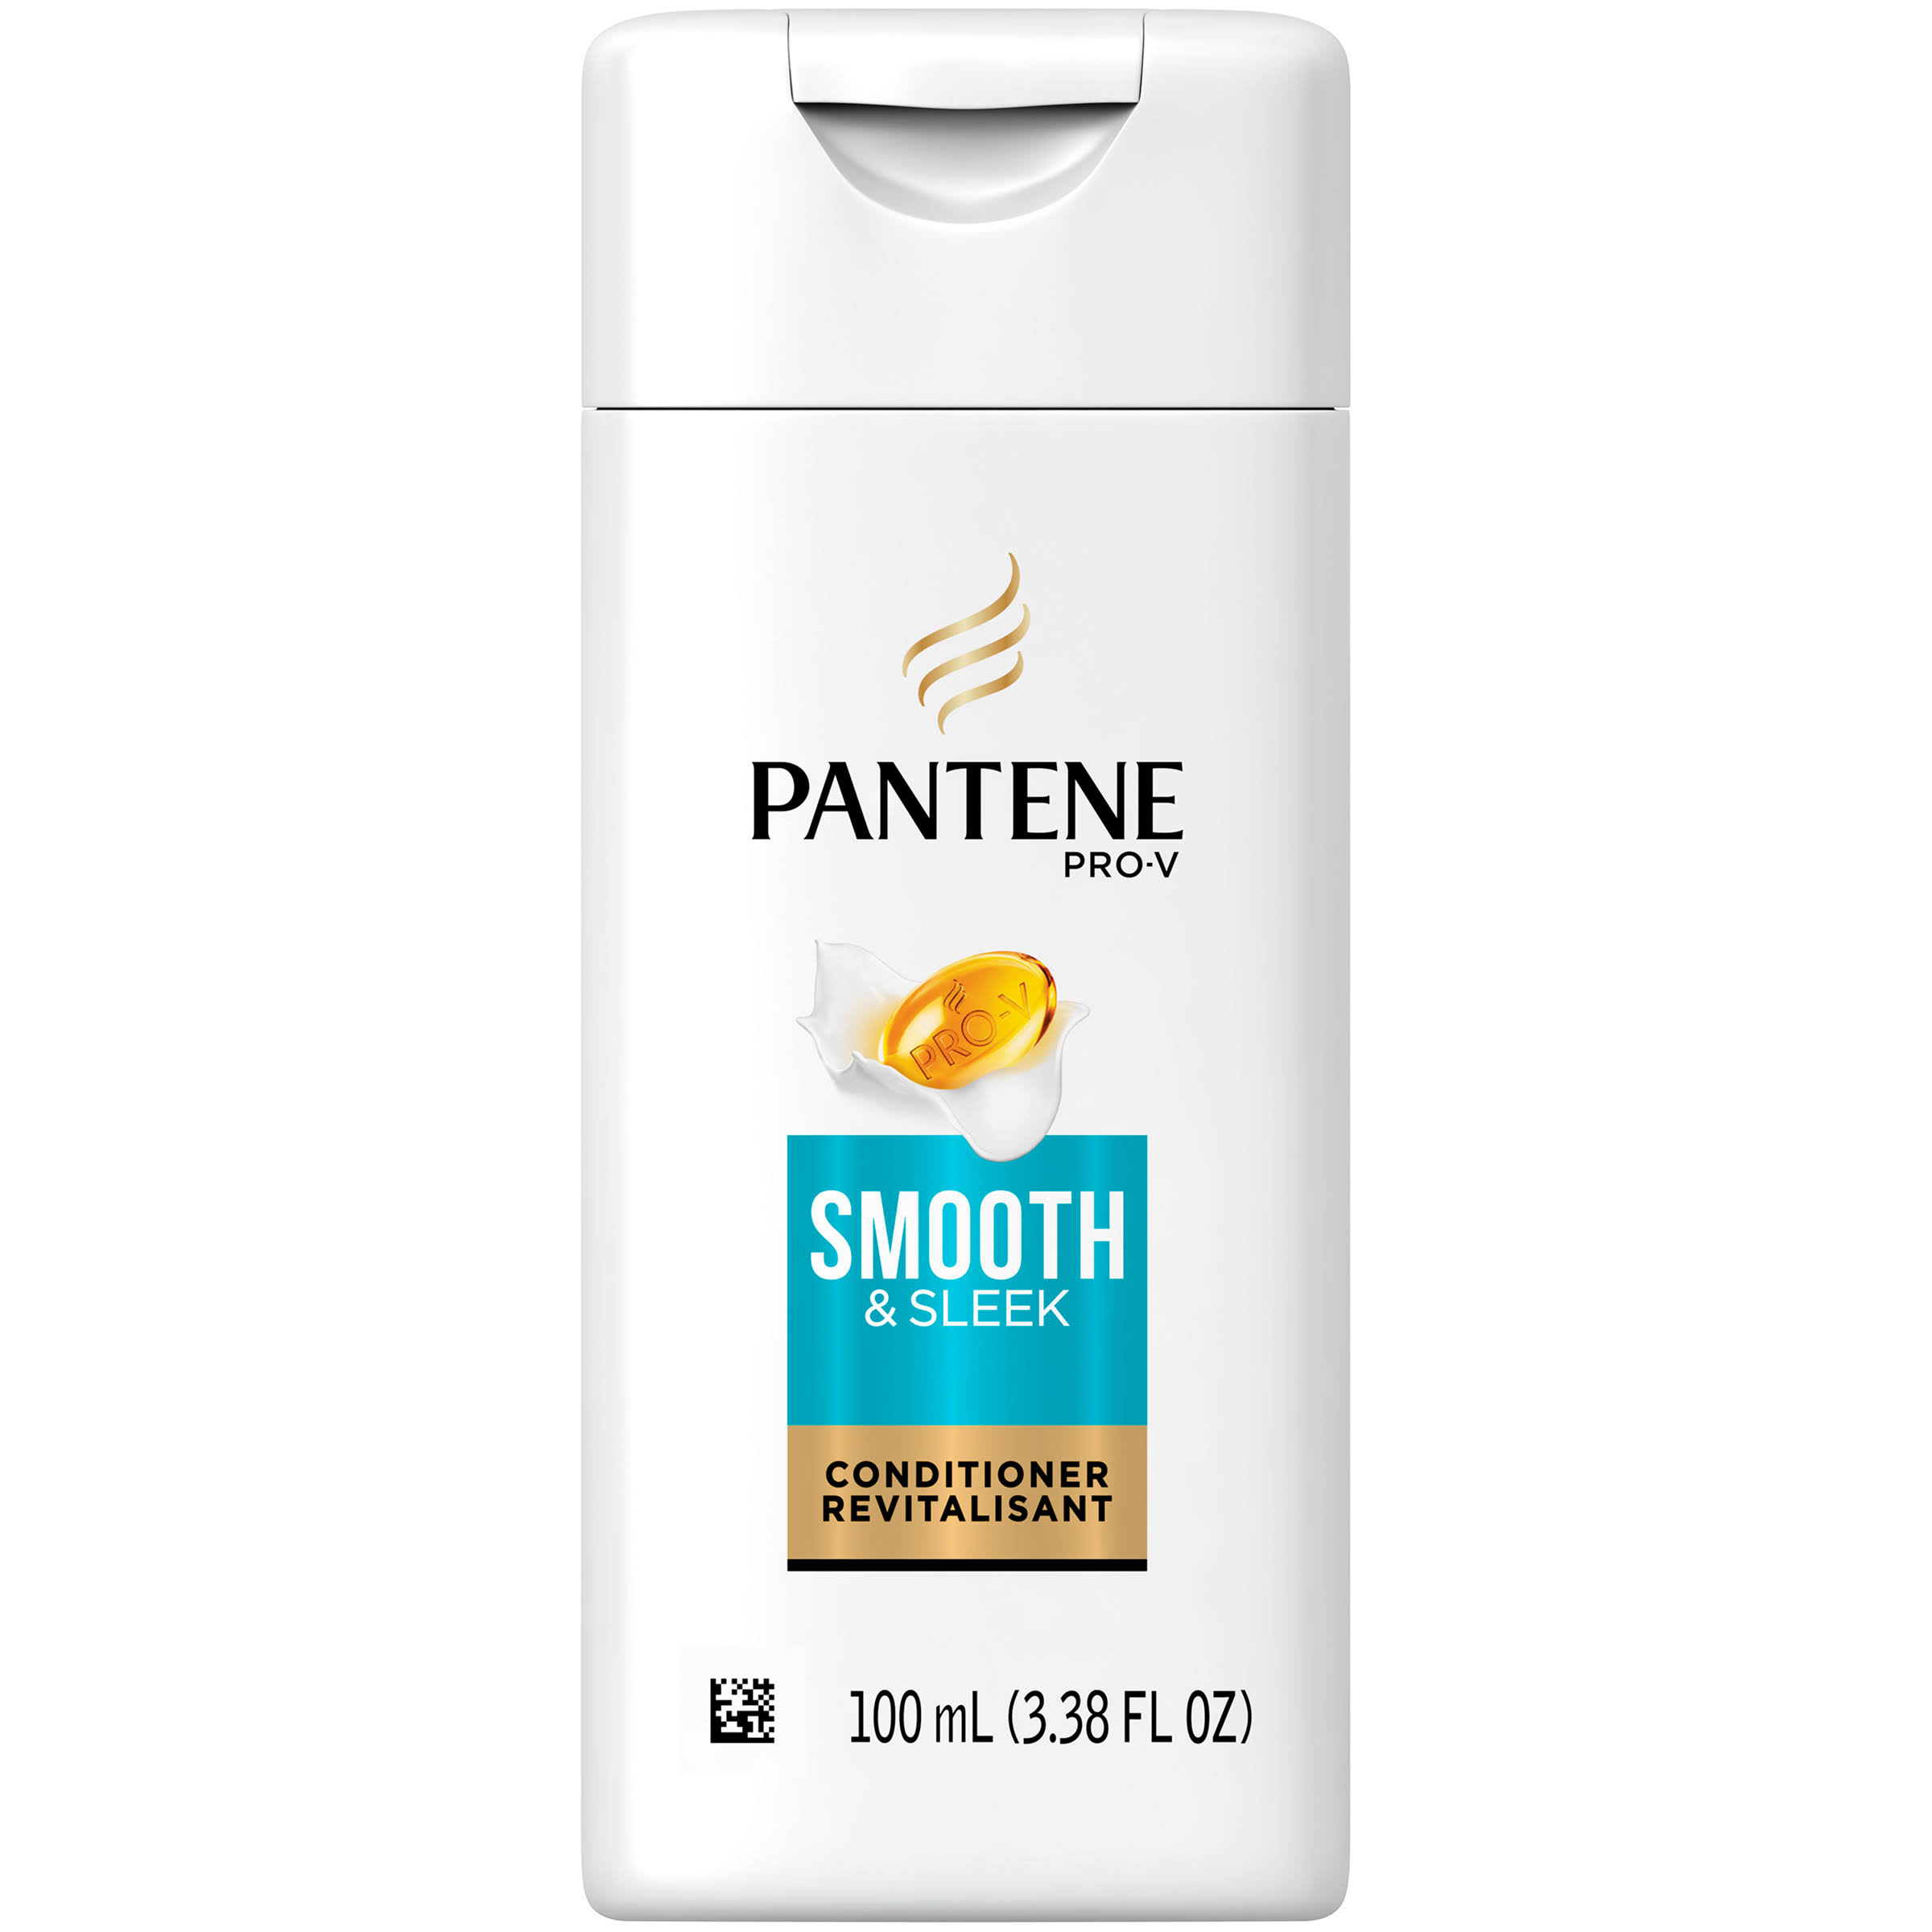 Pantene Pro V Smooth and Sleek Conditioner - 100ml